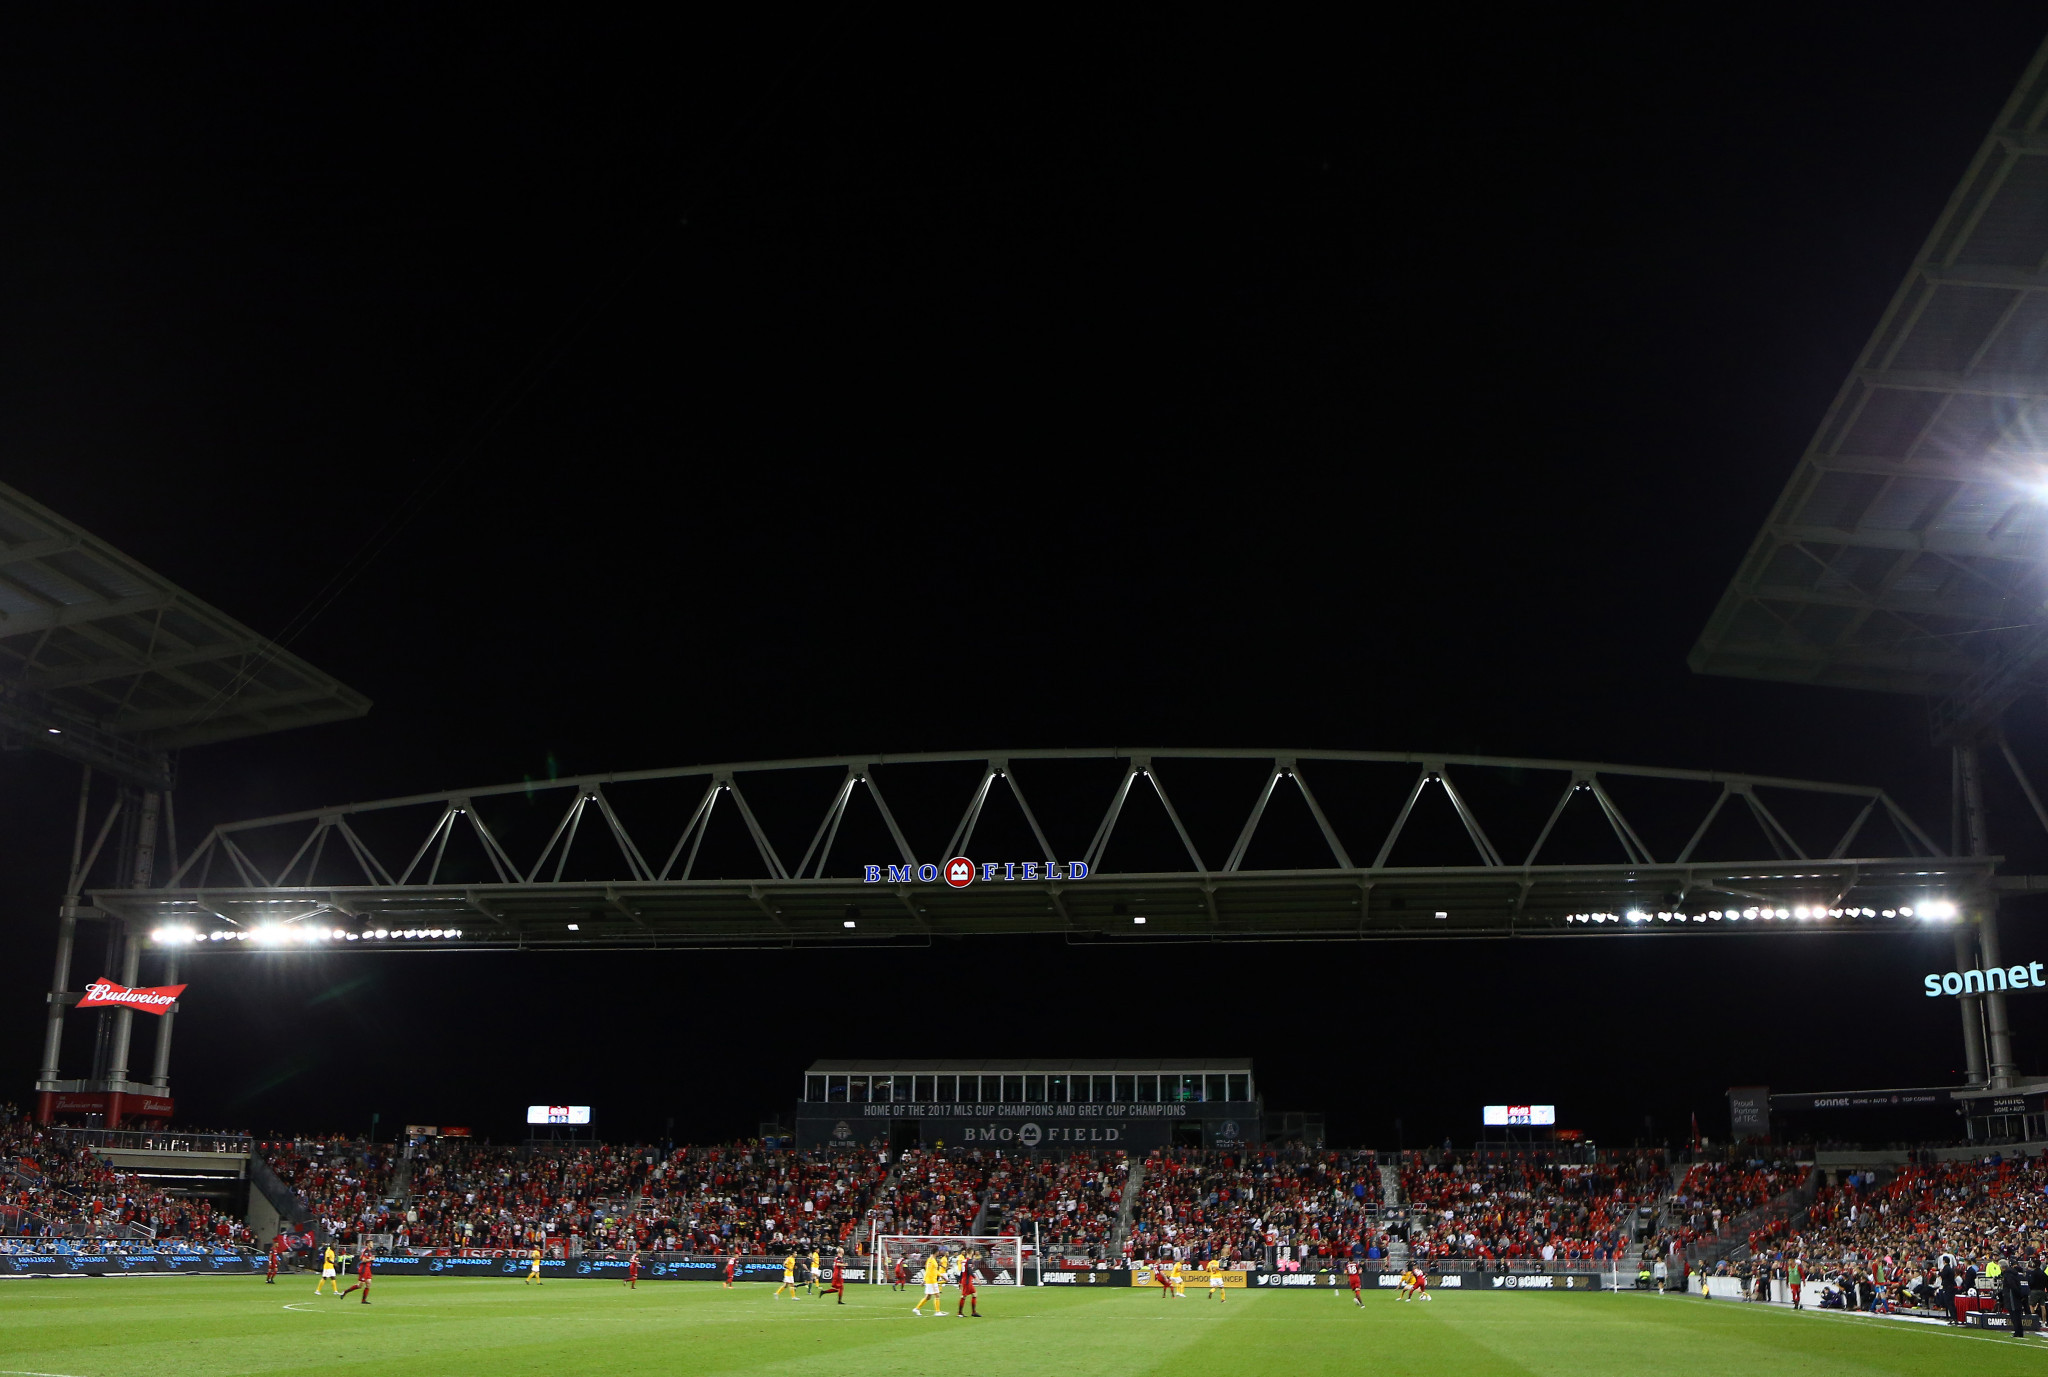 BMO Field in Toronto is among the three Canadian cities bidding to be a host venue for the 2026 FIFA World Cup that is also being co-hosted by the United States and Mexico ©Getty Images